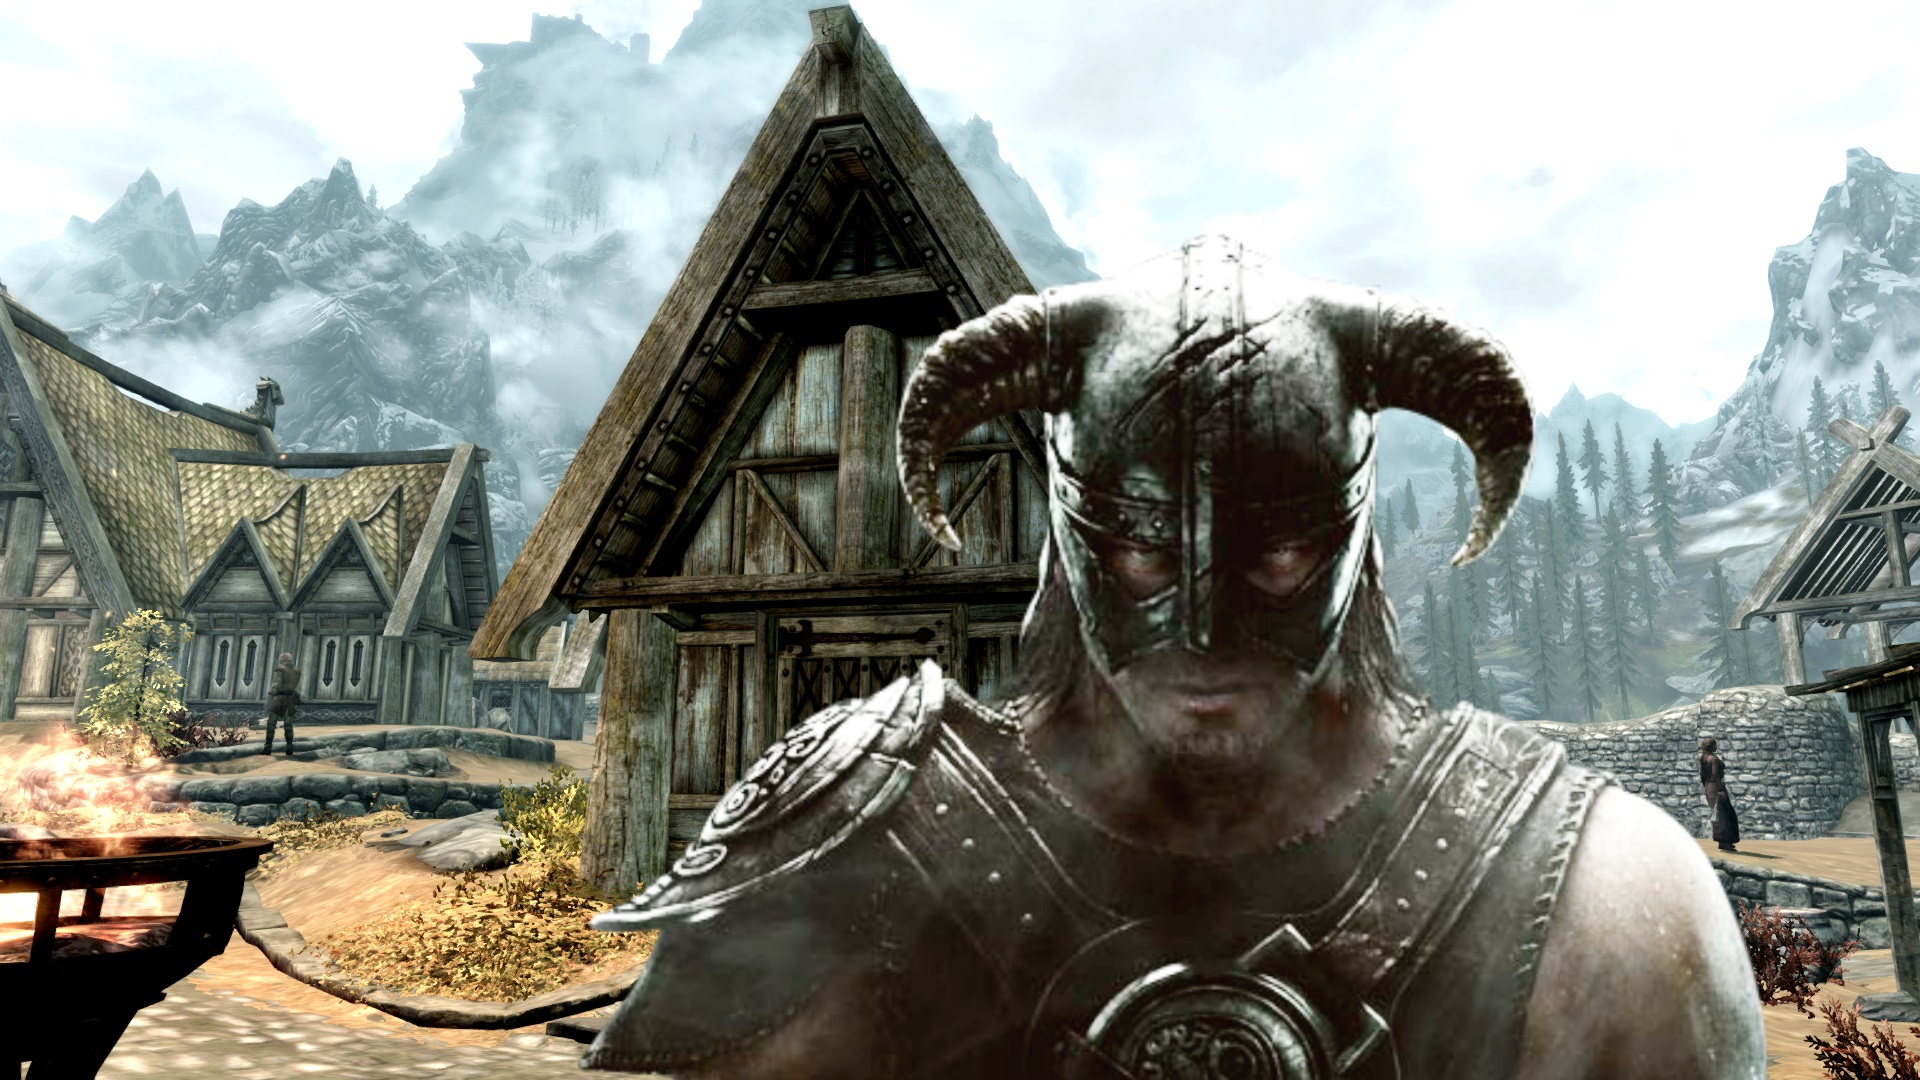 How to buy a house in Skyrim